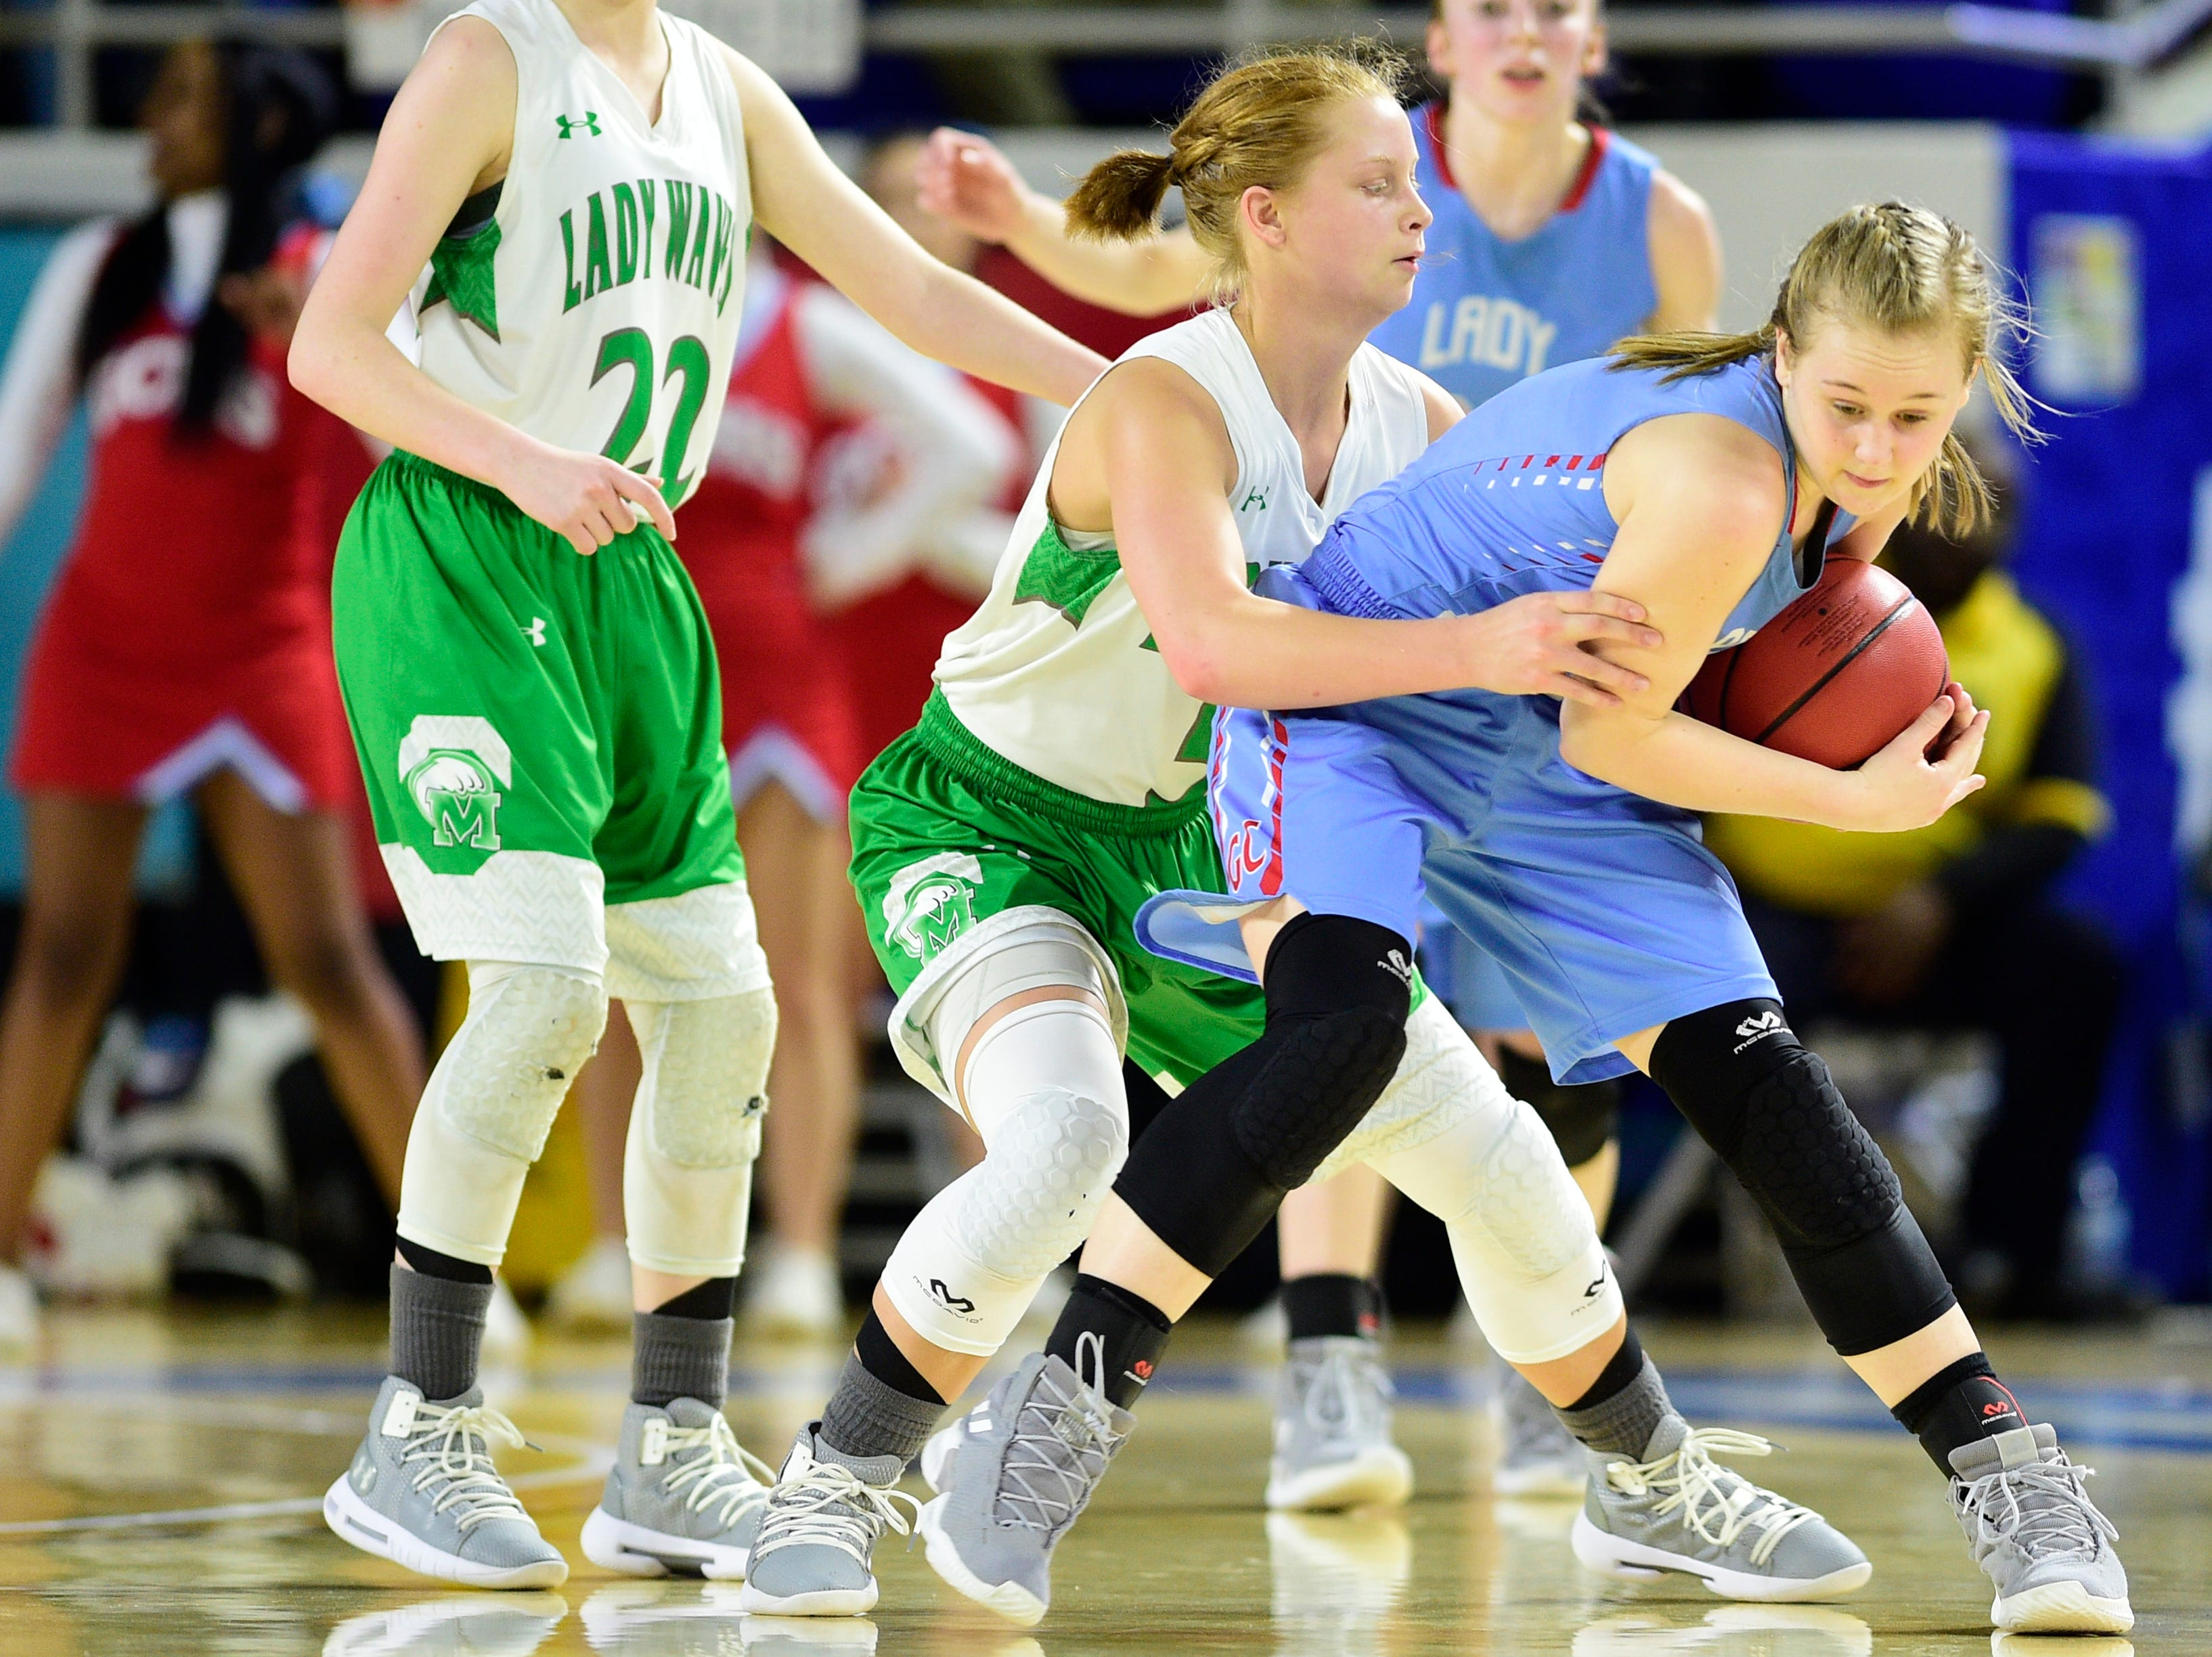 Midway's Paige Bacon (5) defends against Gibson County's Ashton Lannom (1) during a game between Midway and Gibson County at the TSSAA girls state tournament at the Murphy Center in Murfreesboro, Tennessee on Friday, March 8, 2019.